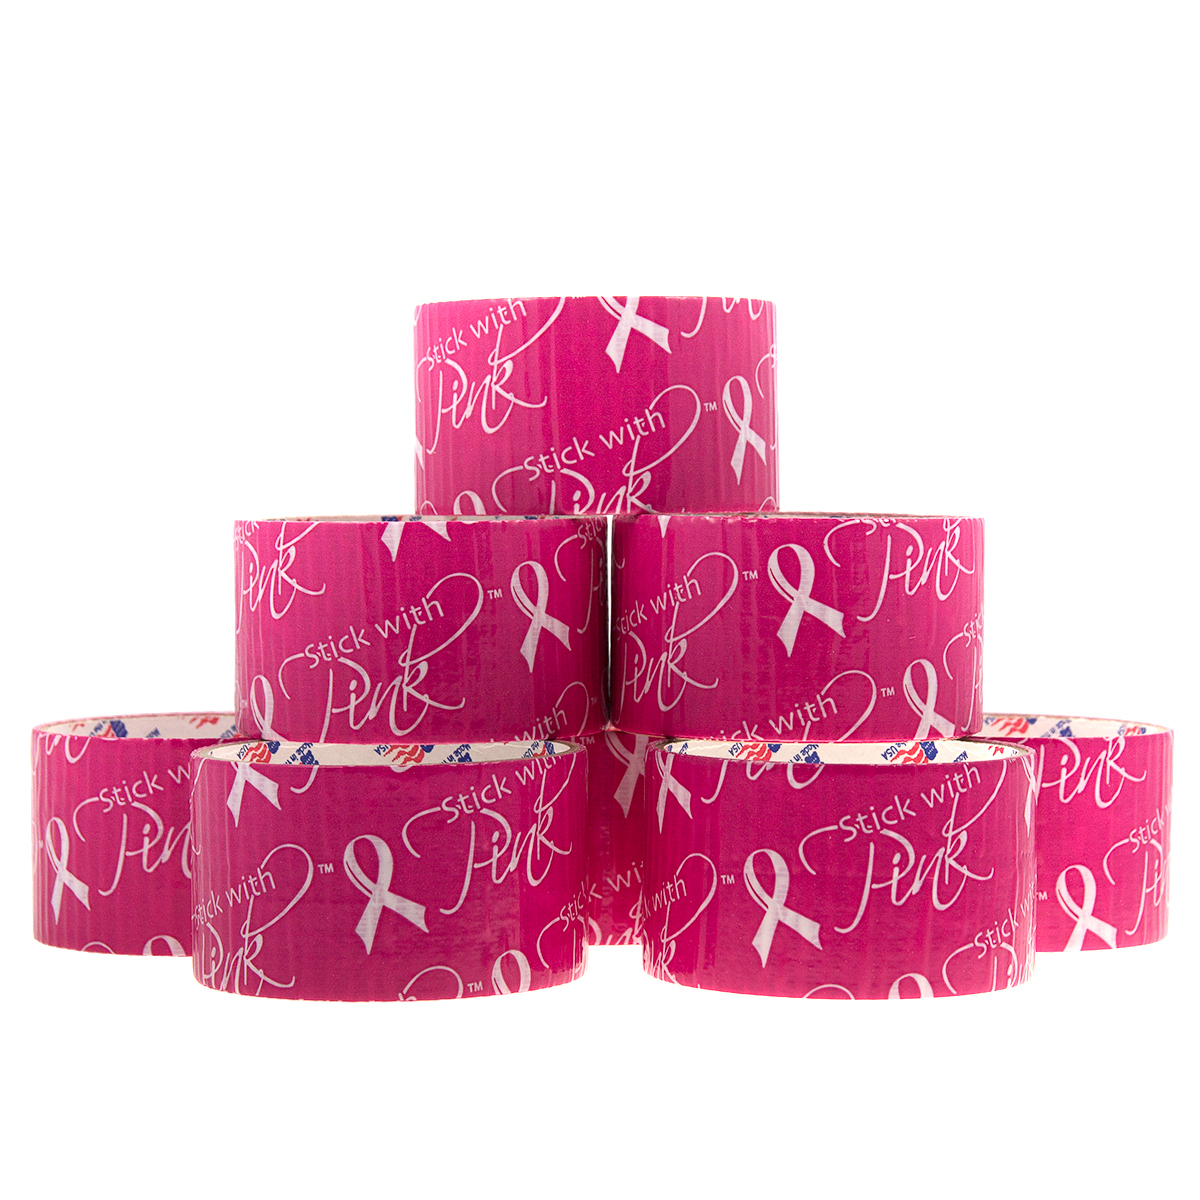 8 Rolls Breast Cancer Awareness Duct Tape Stick With Pink Arts Crafts DIY Duck Bulk Rolls Decorative Hobby Fashion Décor Printed